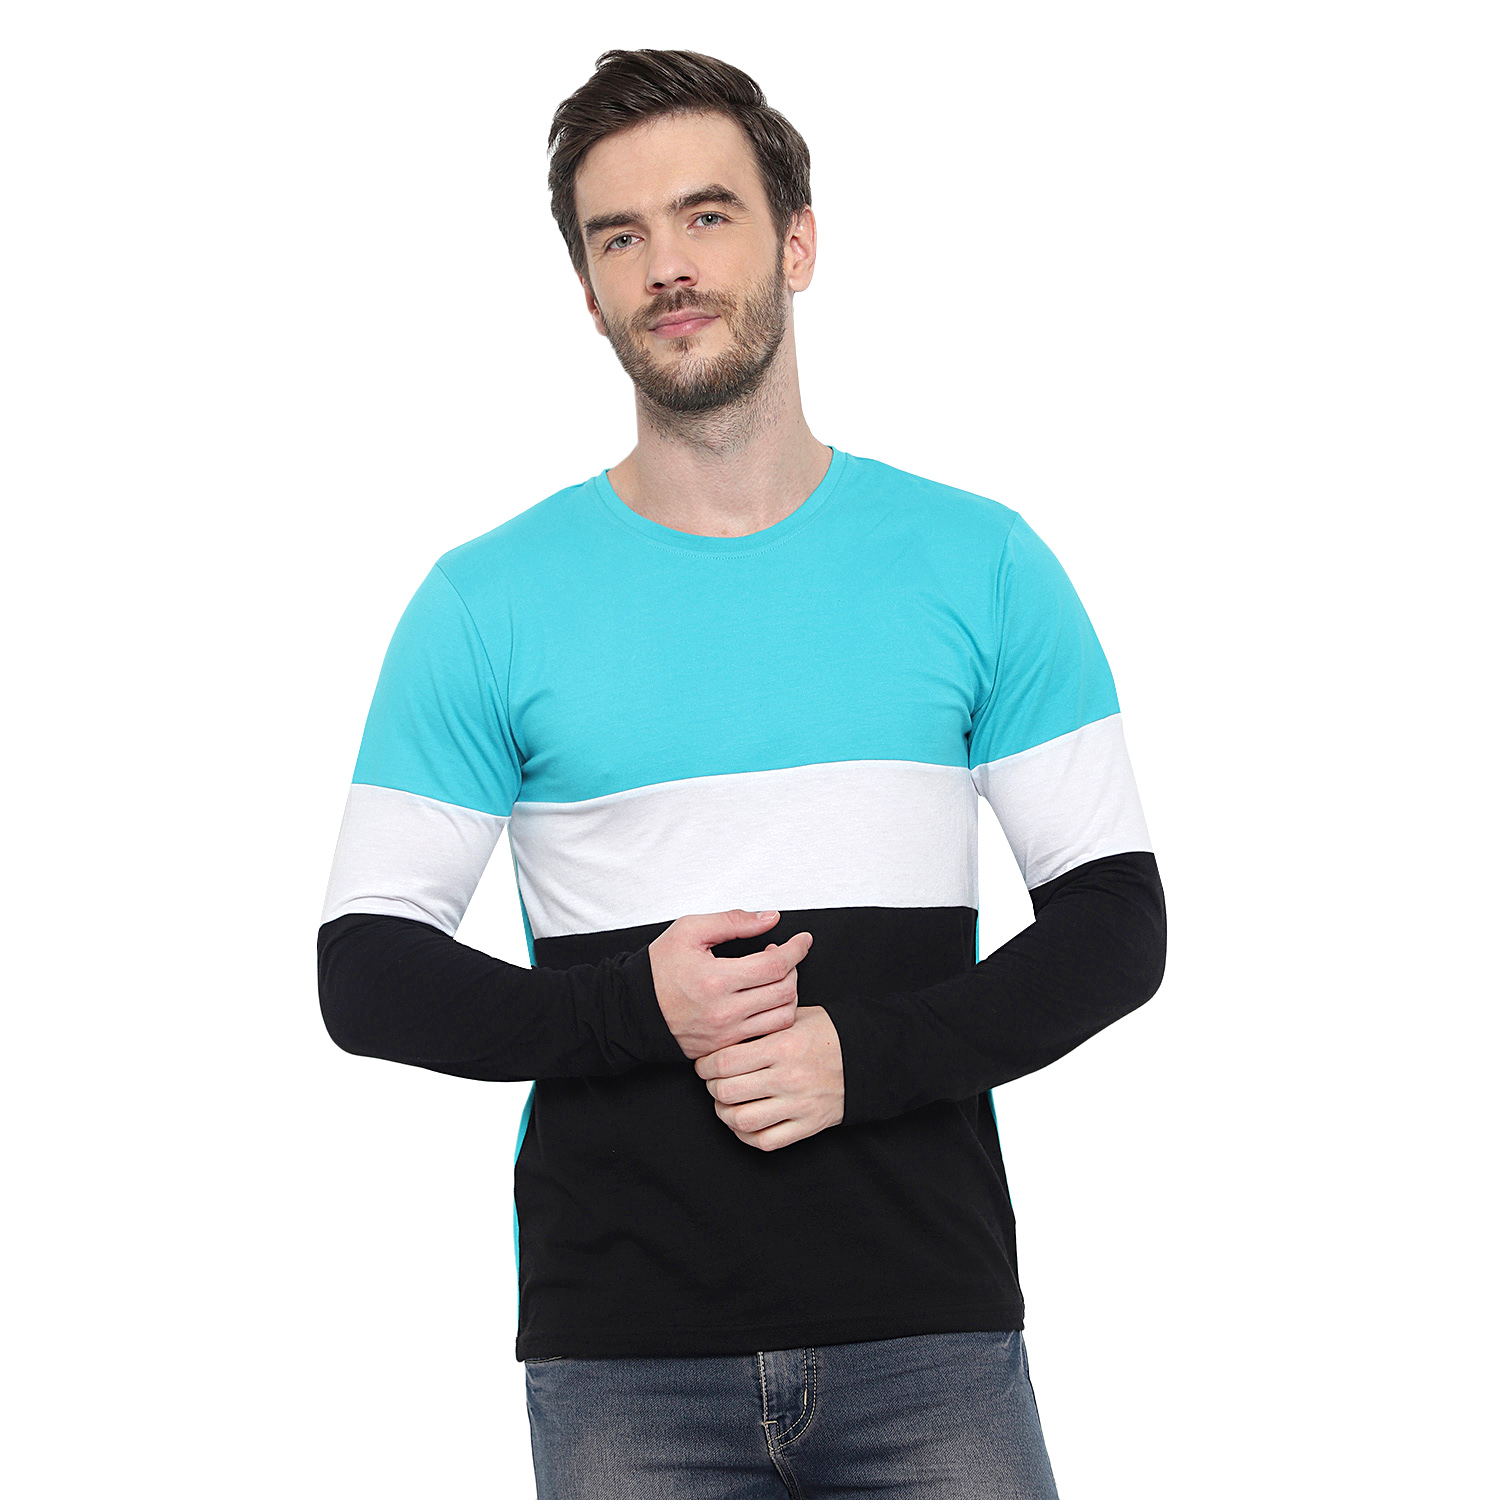 Glito Light Blue Black & White Color Black T-Shirt for Men